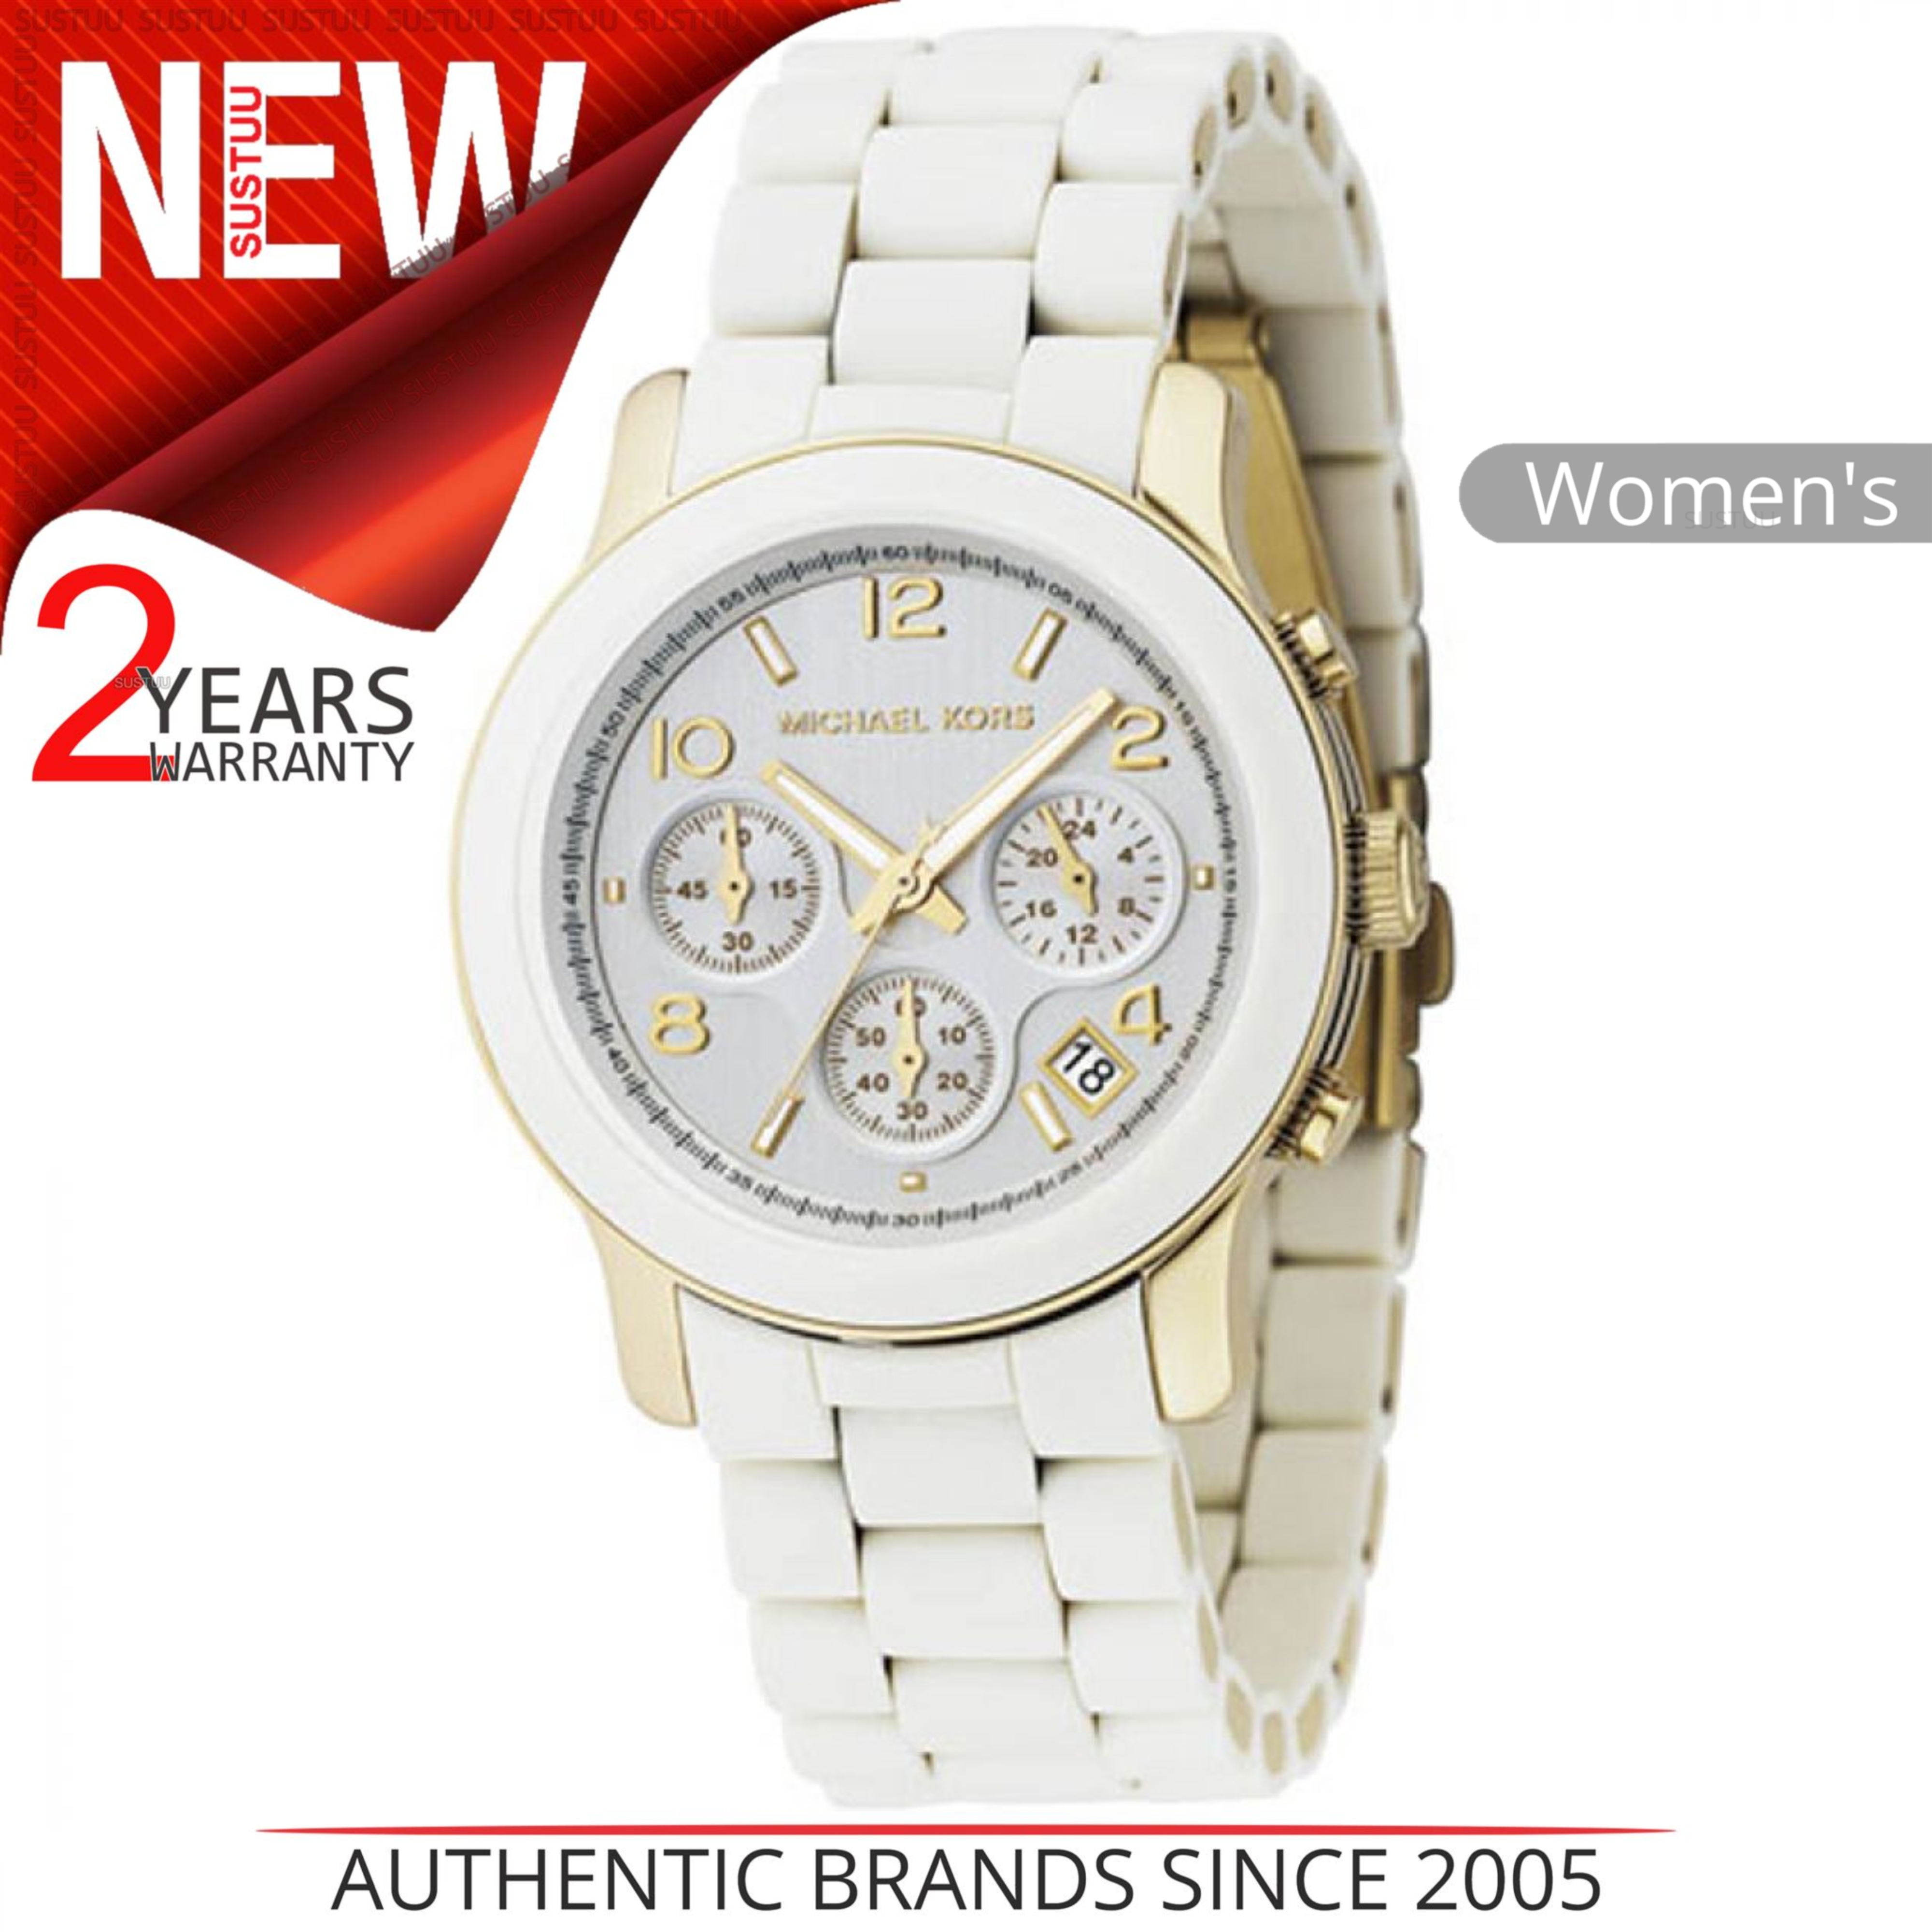 a8ba40bfe549 Details about Michael Kors Runway Ladies Watch MK5145│Silver Round Dial│ White Bracelet Band